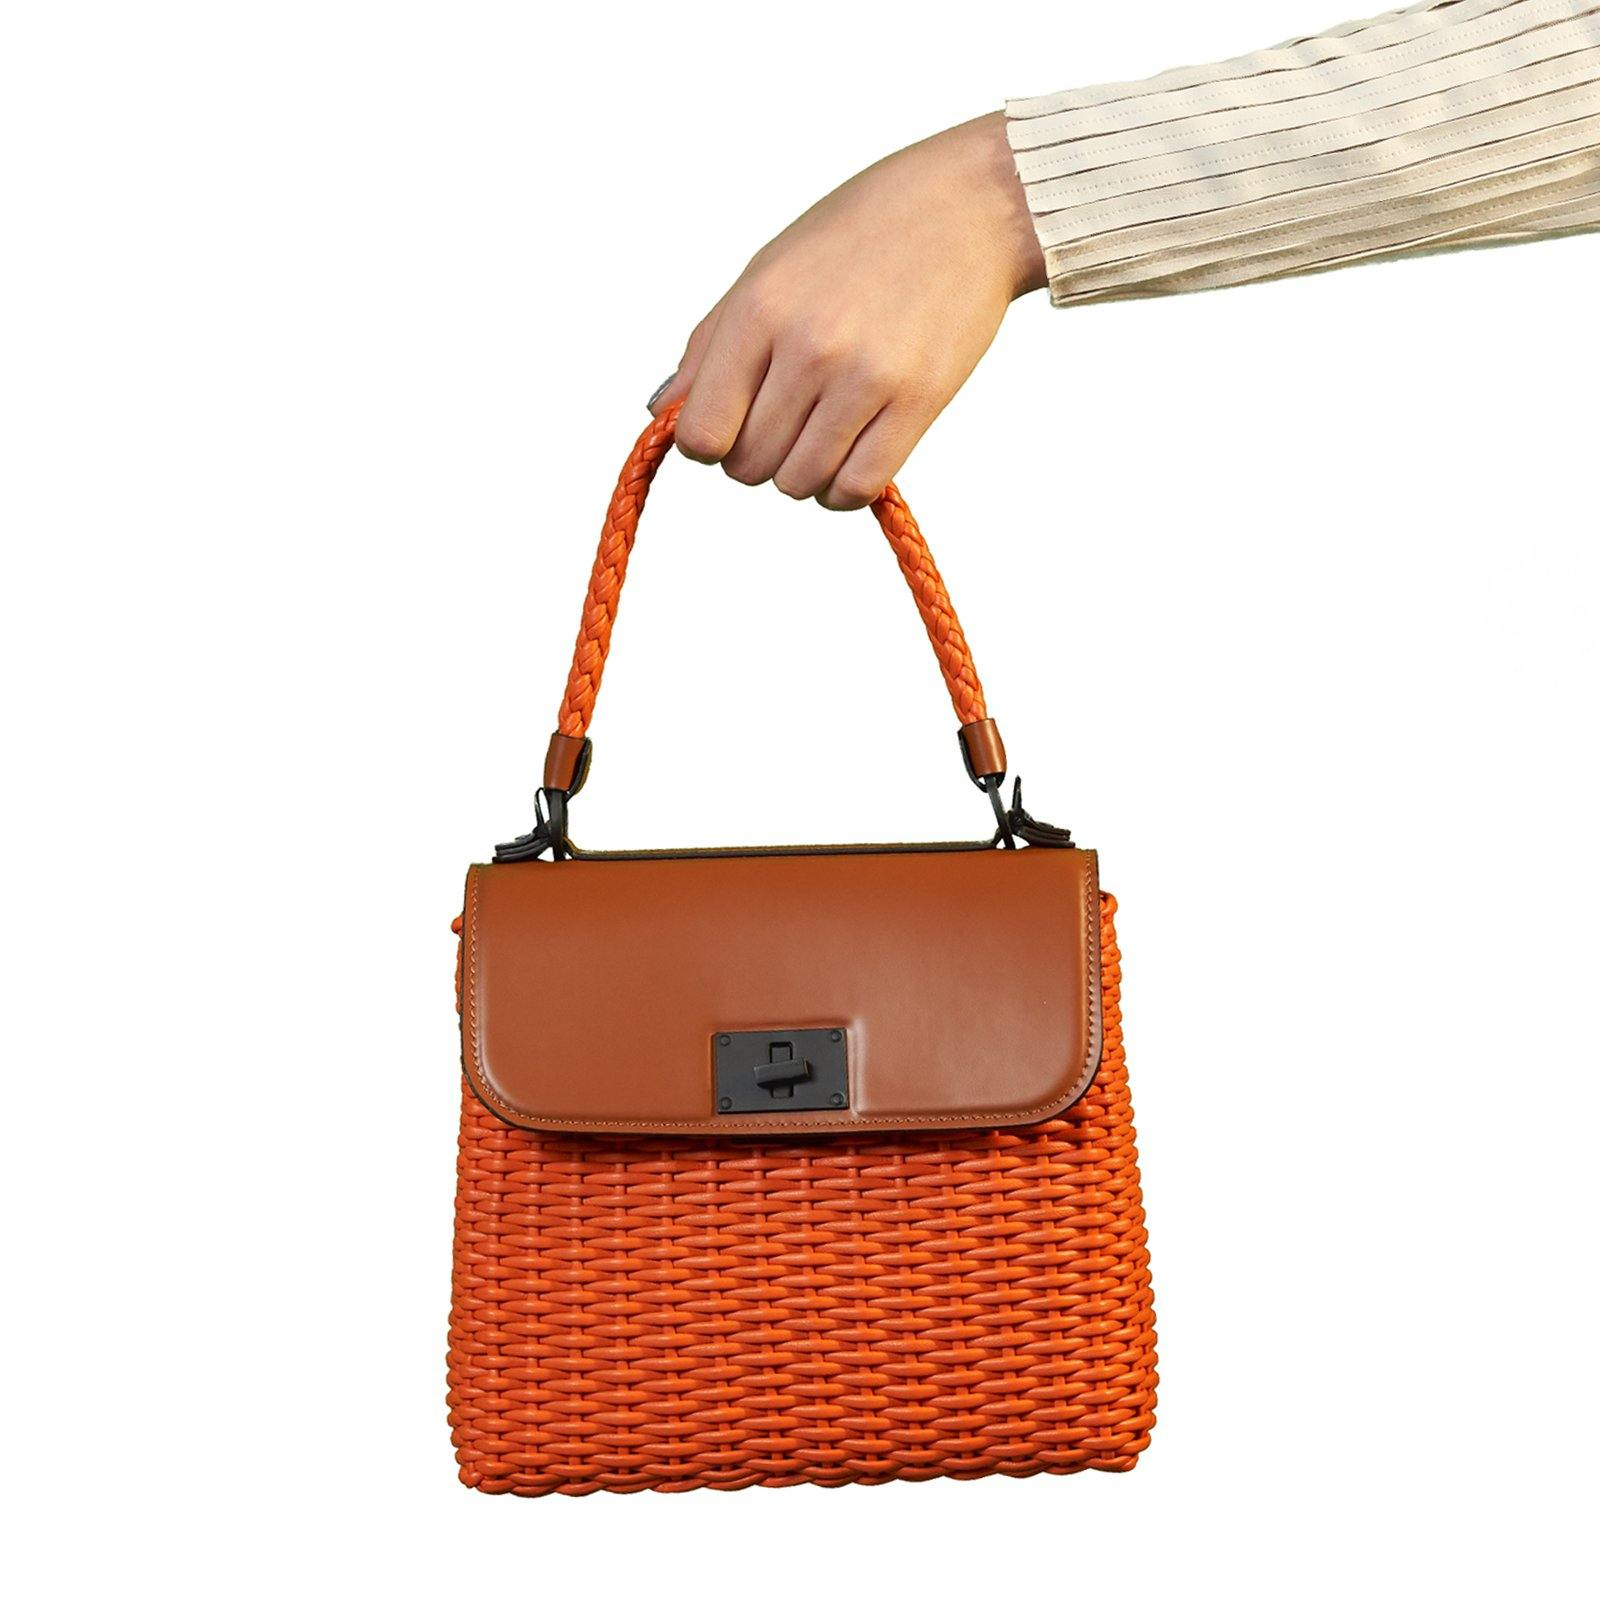 Women Leather Intrecciato Canestro Bag